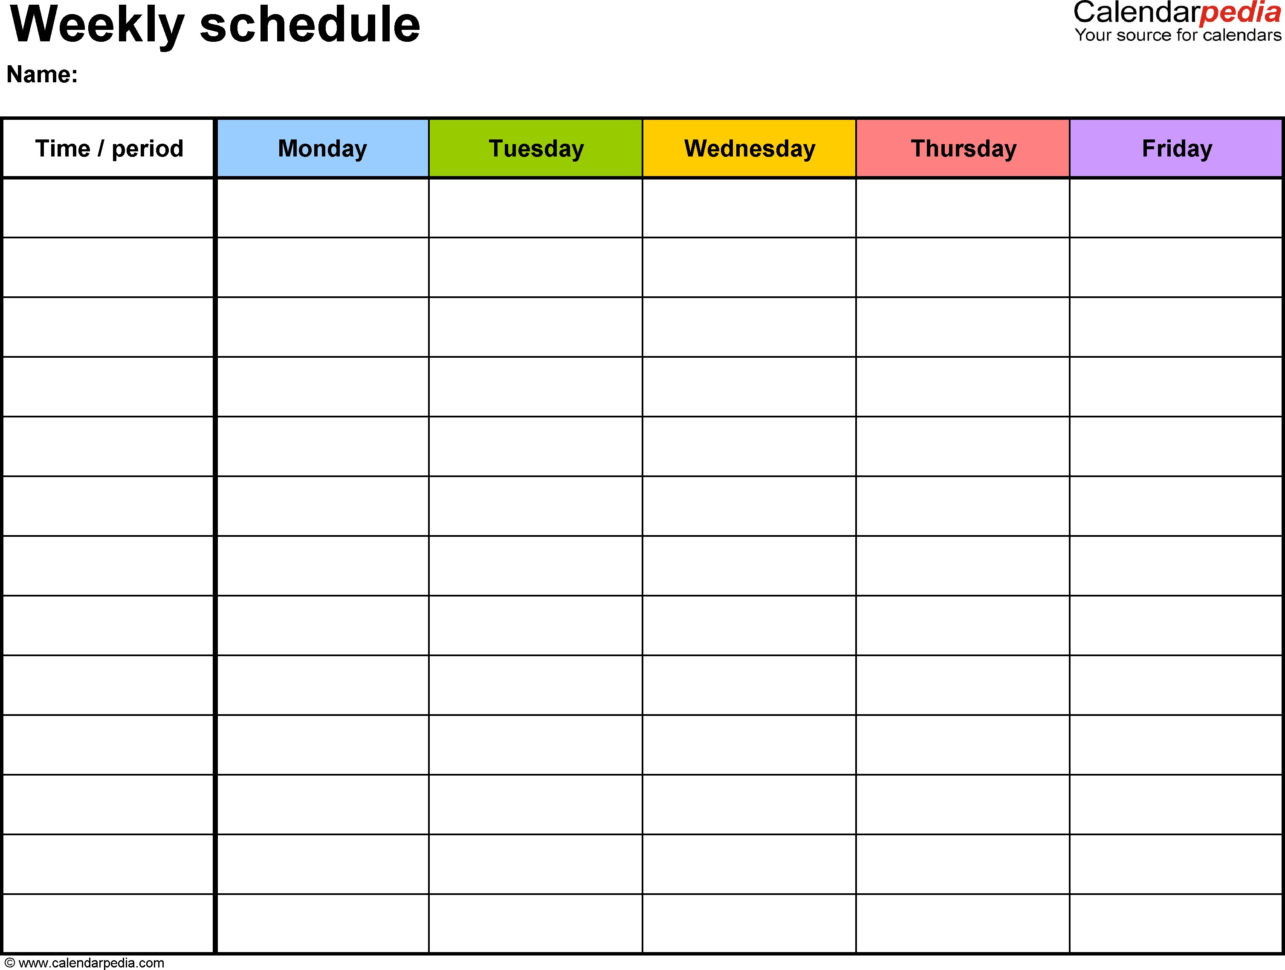 Daily Medication Schedule Spreadsheet Throughout 014 Daily Medication Schedule Template Spreadsheet Awesome Monthly